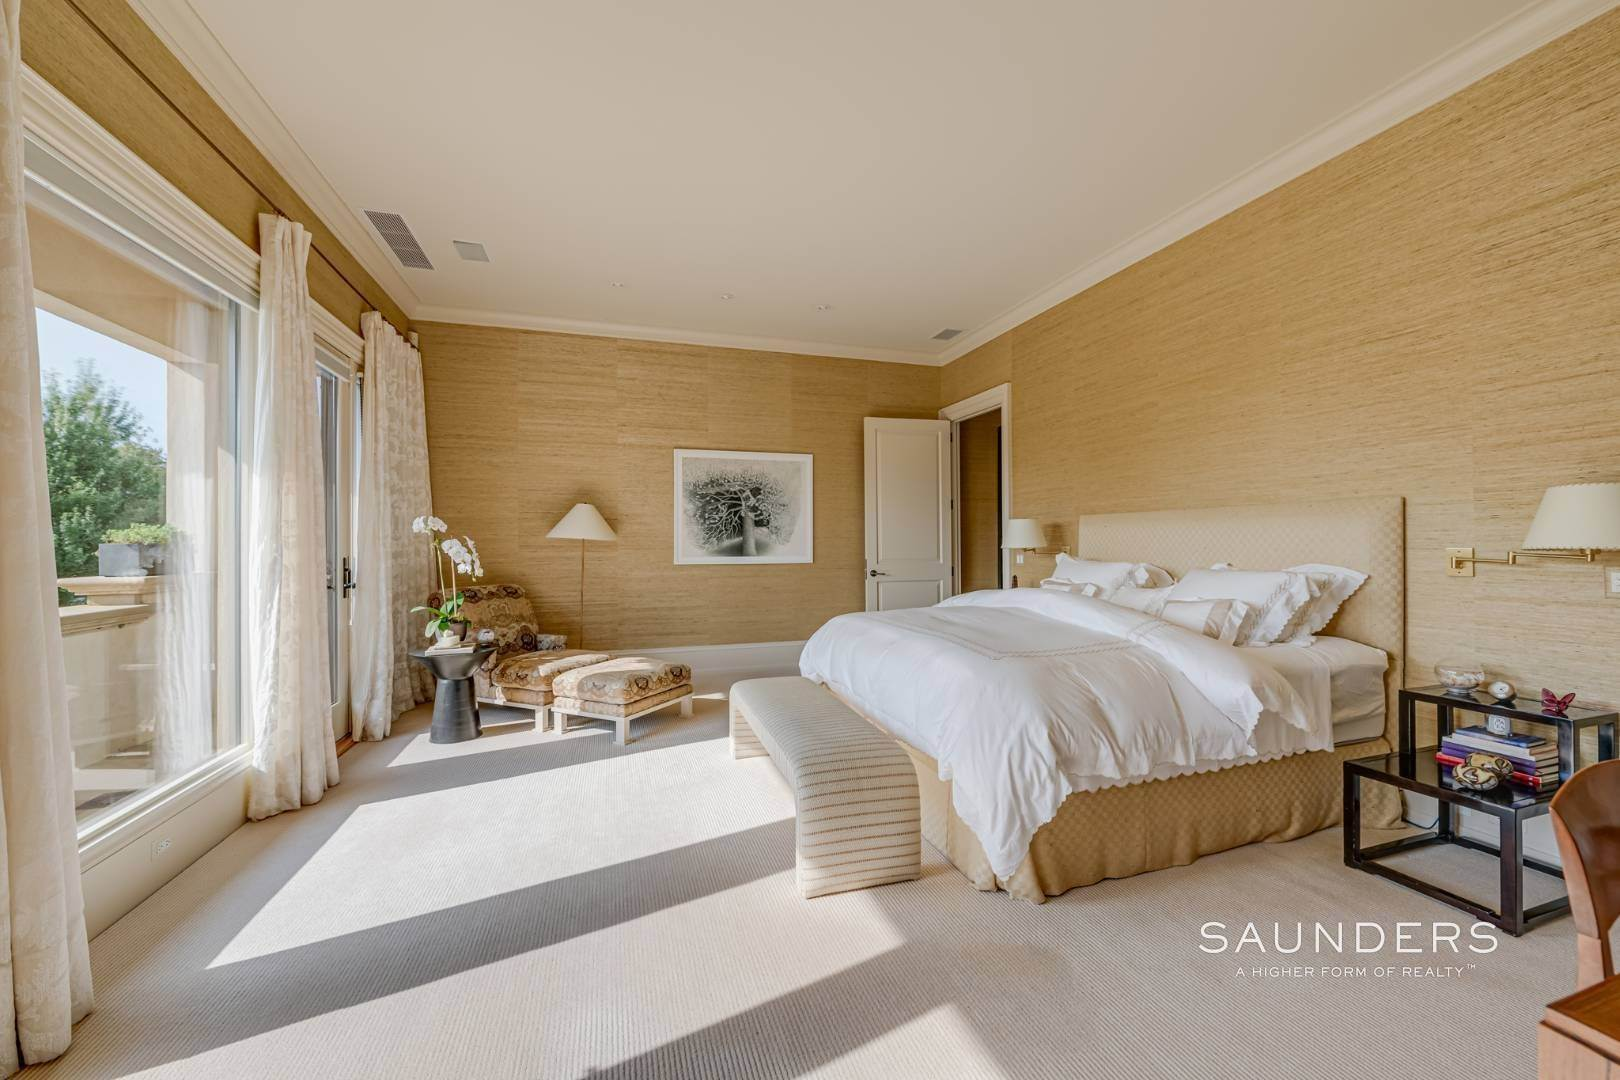 6. Single Family Homes for Sale at Secluded Bridgehampton Waterfront Estate 160 & 164 Trelawney Road, Bridgehampton, Southampton Town, NY 11932